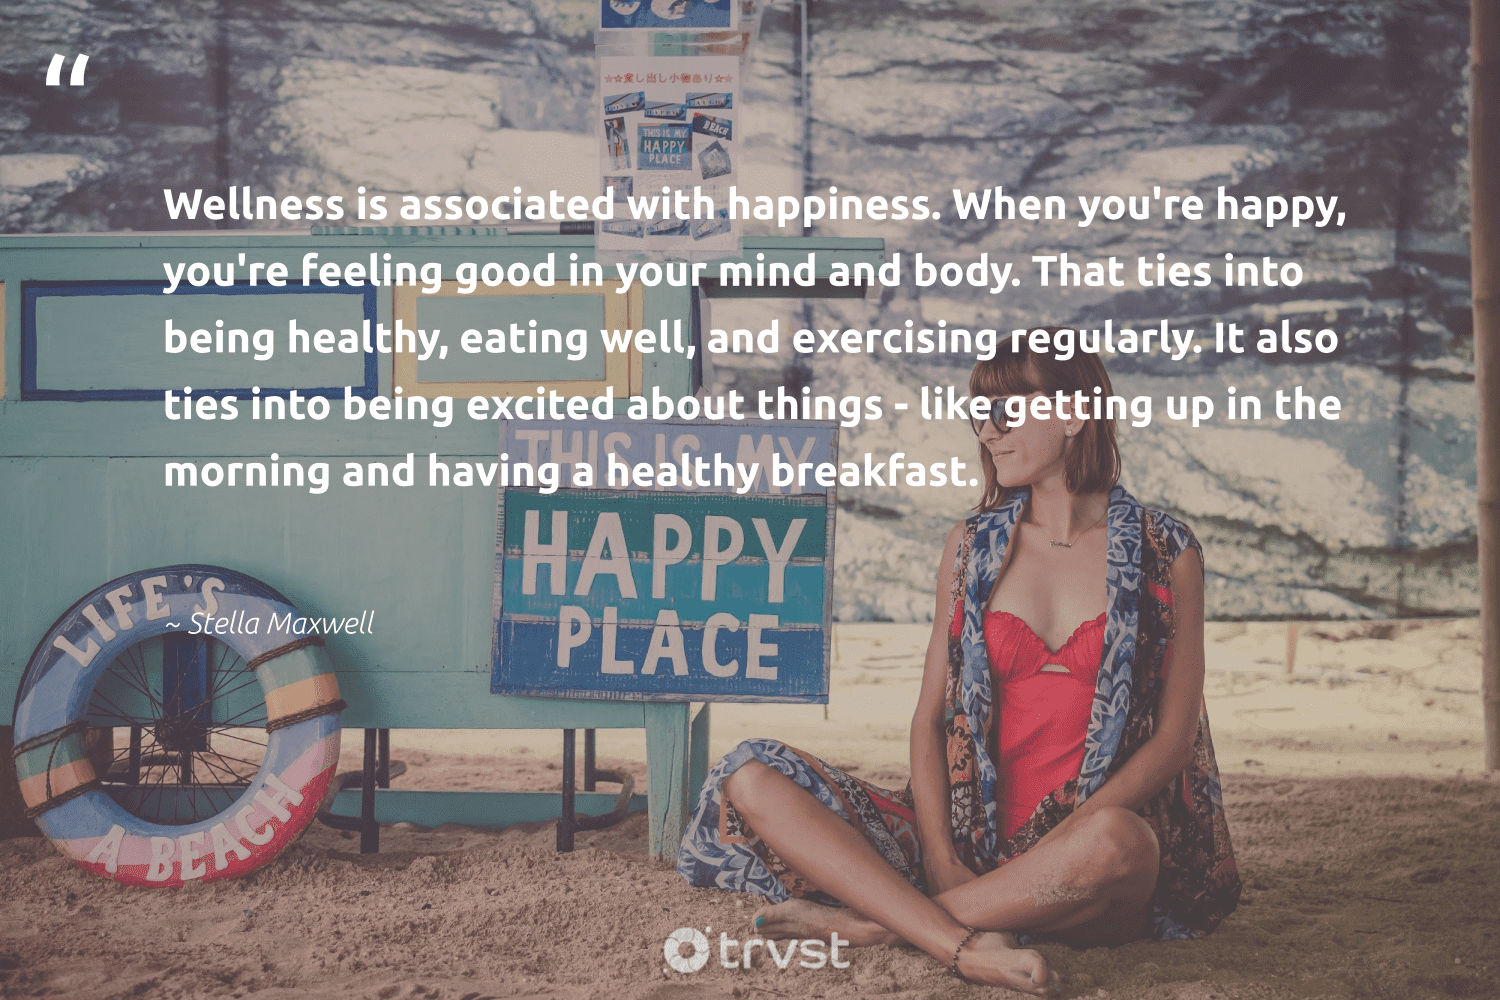 """""""Wellness is associated with happiness. When you're happy, you're feeling good in your mind and body. That ties into being healthy, eating well, and exercising regularly. It also ties into being excited about things - like getting up in the morning and having a healthy breakfast.""""  - Stella Maxwell #trvst #quotes #wellbeing #happy #happiness #wellness #healthy #healthyeating #wellbeing #health #changemakers #socialimpact"""